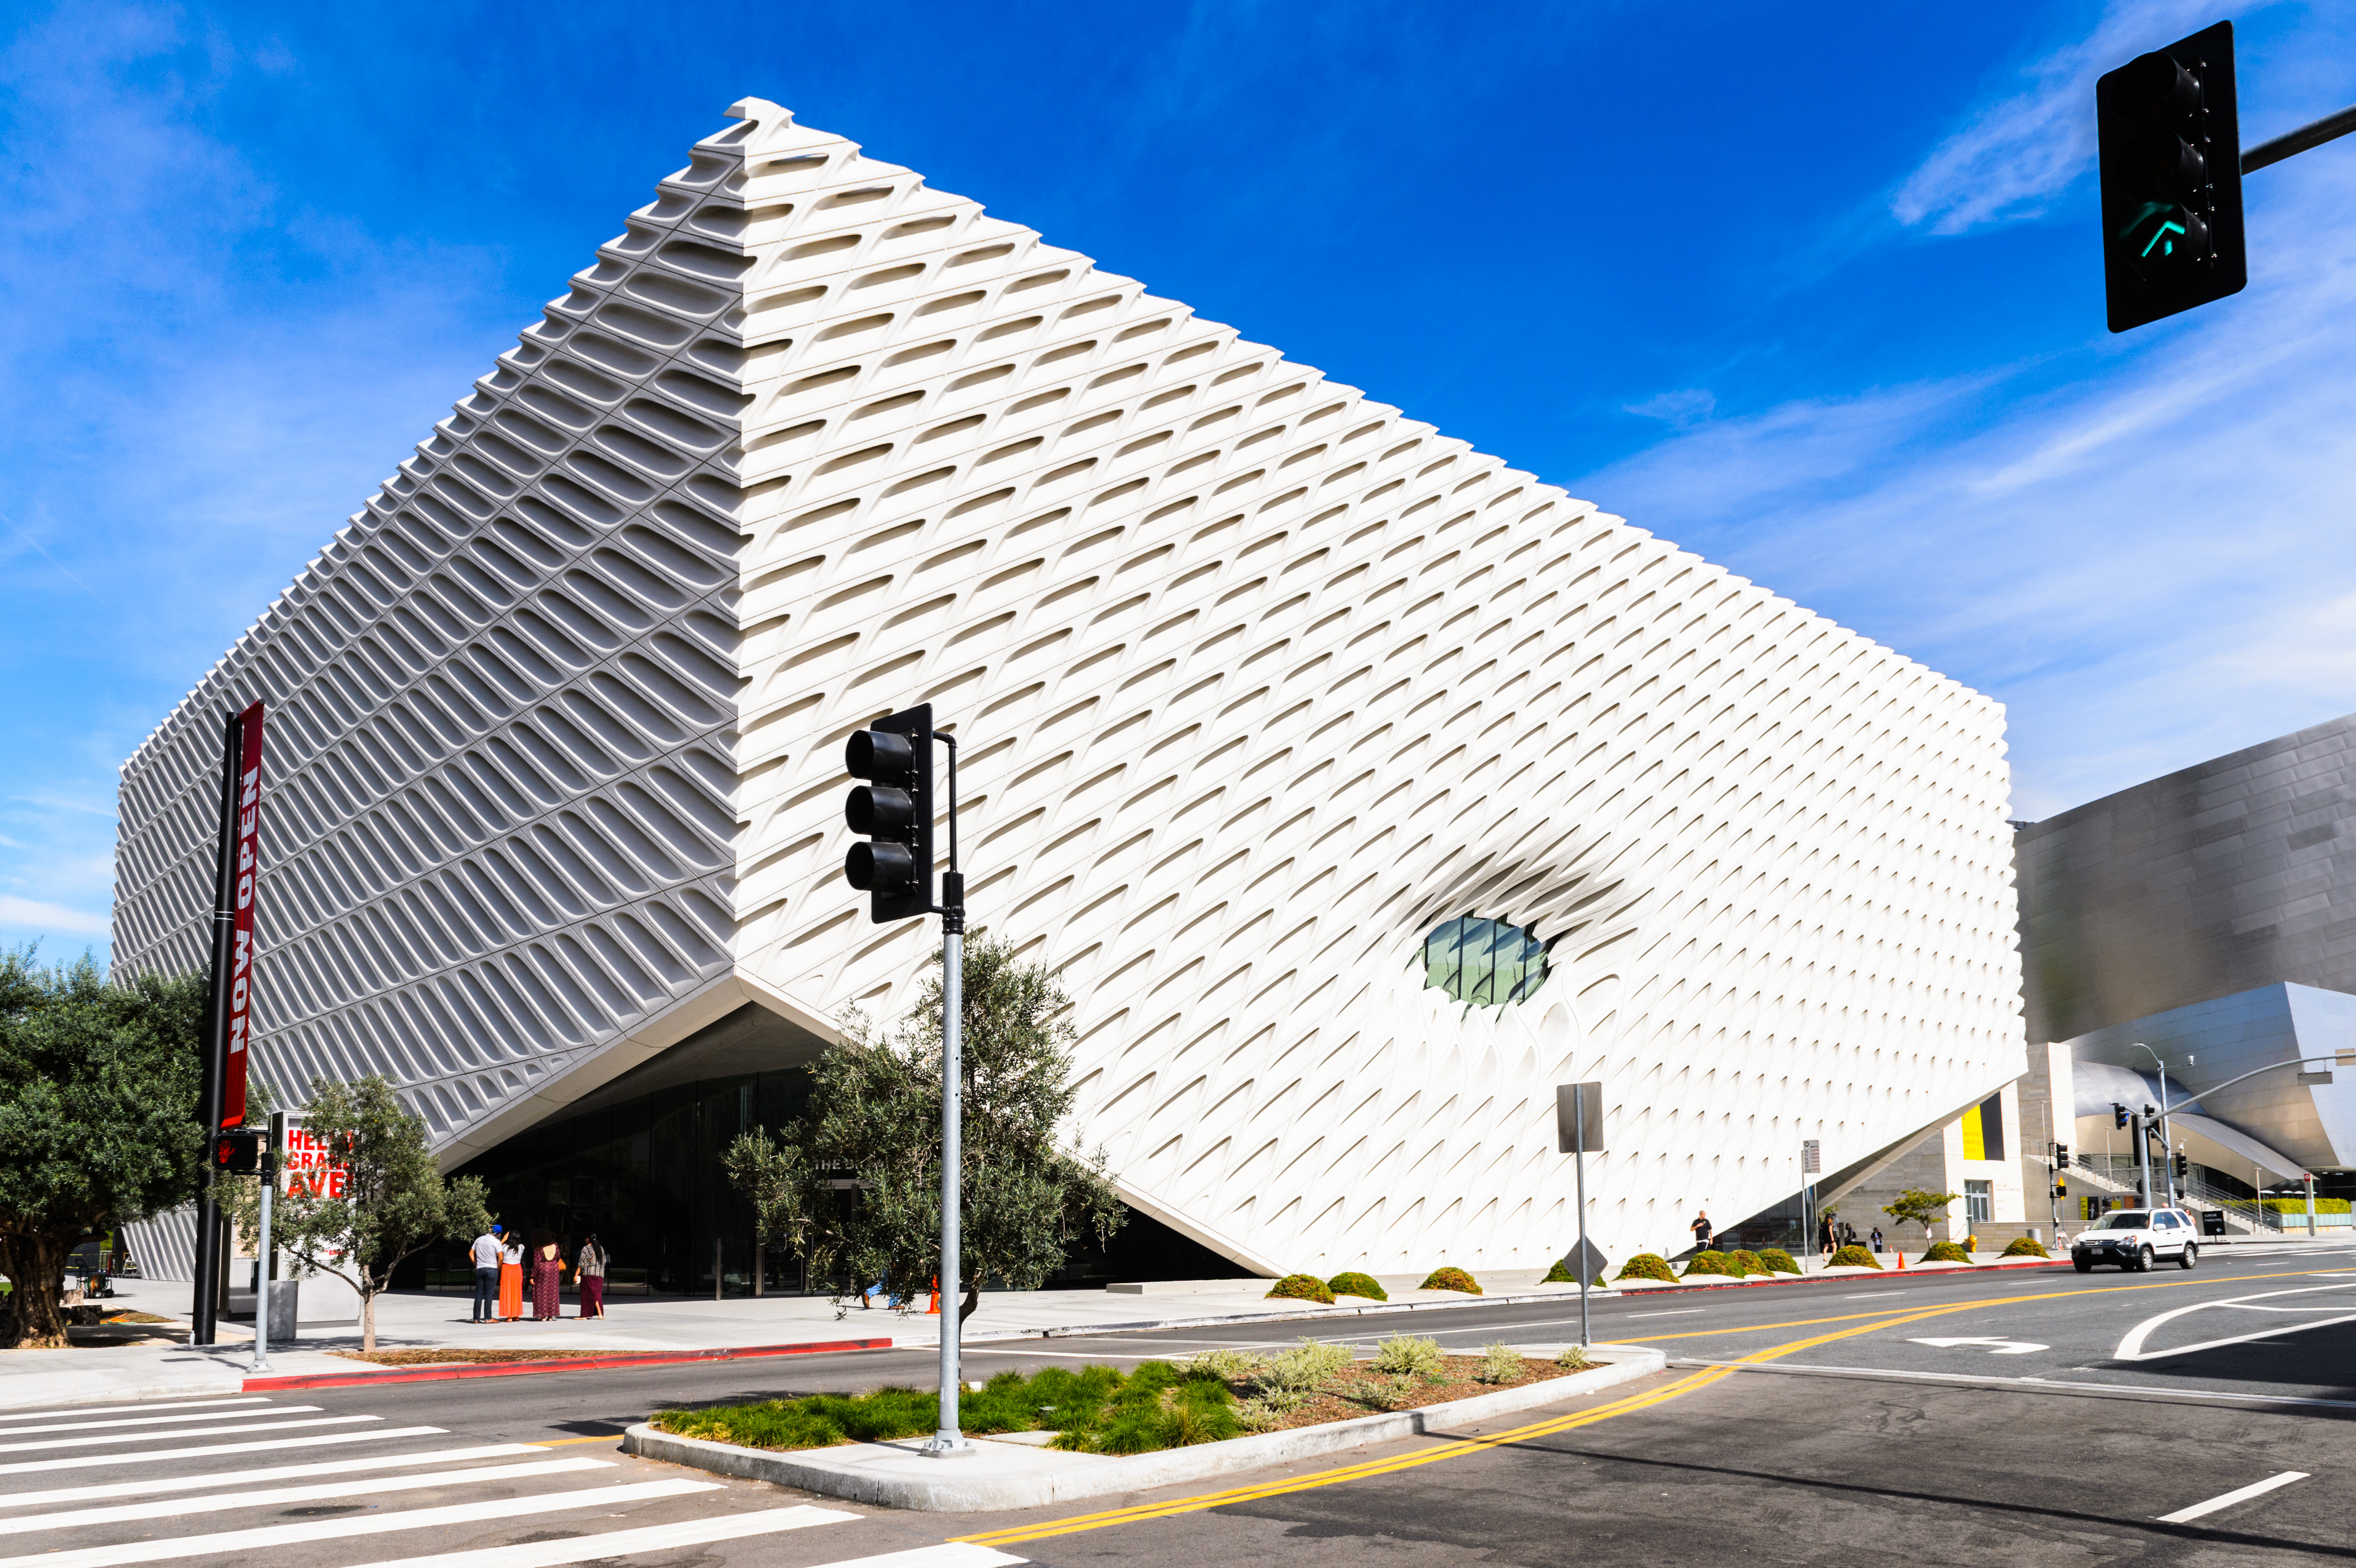 19 U.S. museums with outstanding architecture